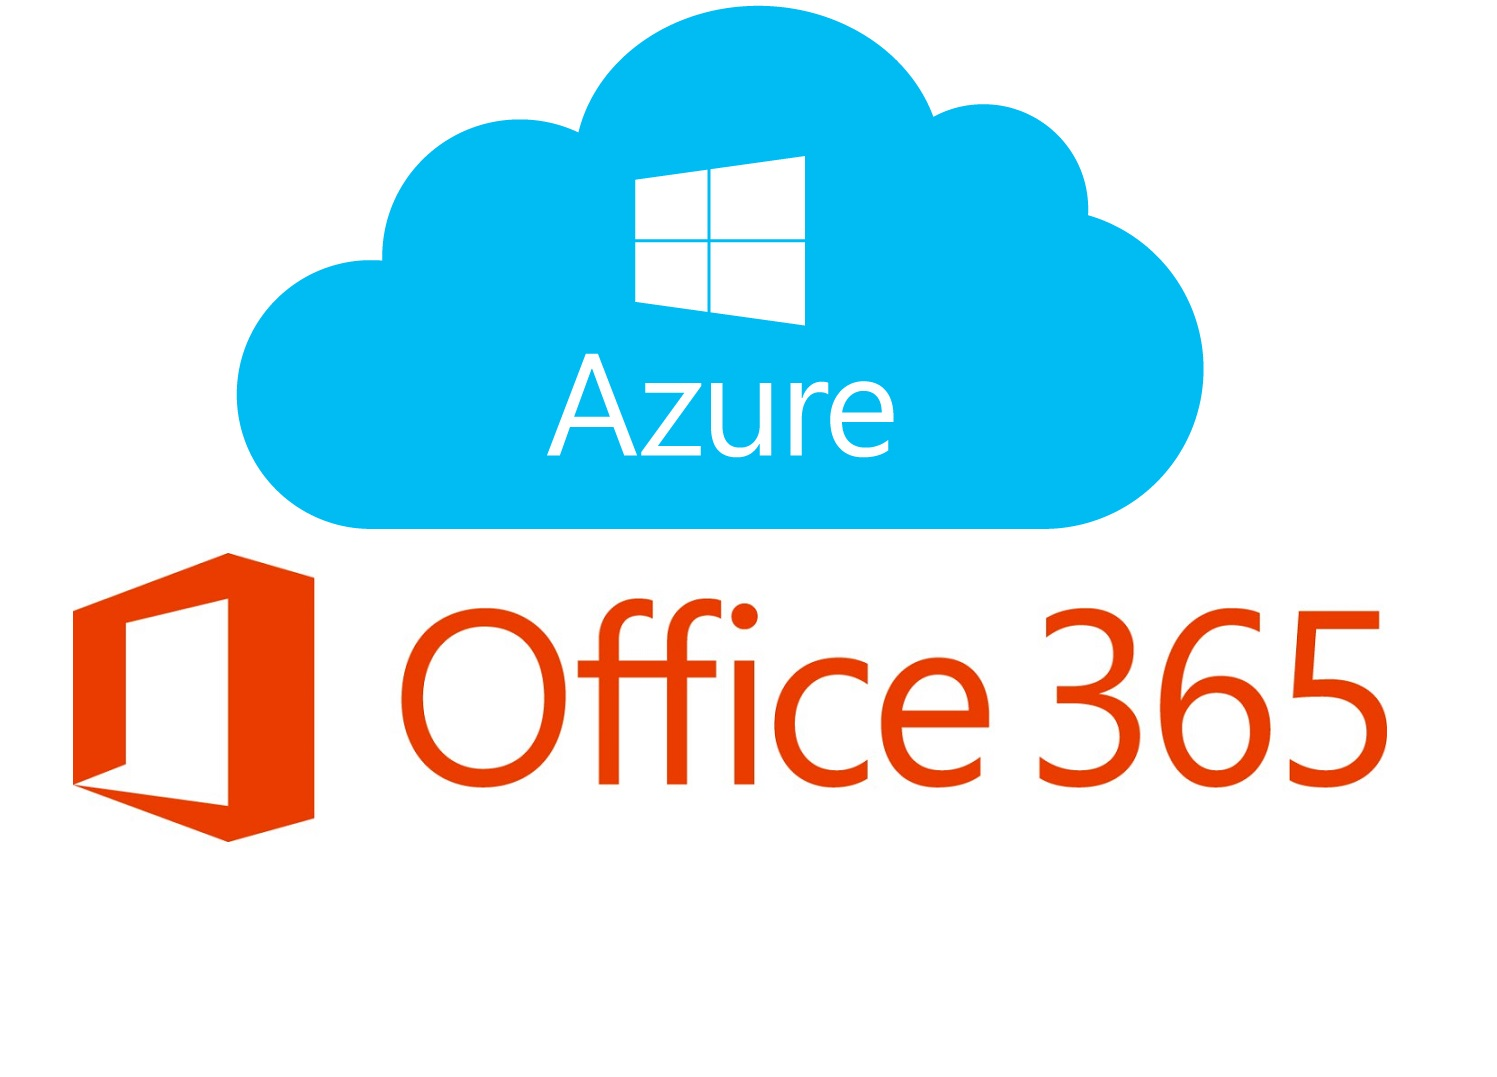 Azure and Office365